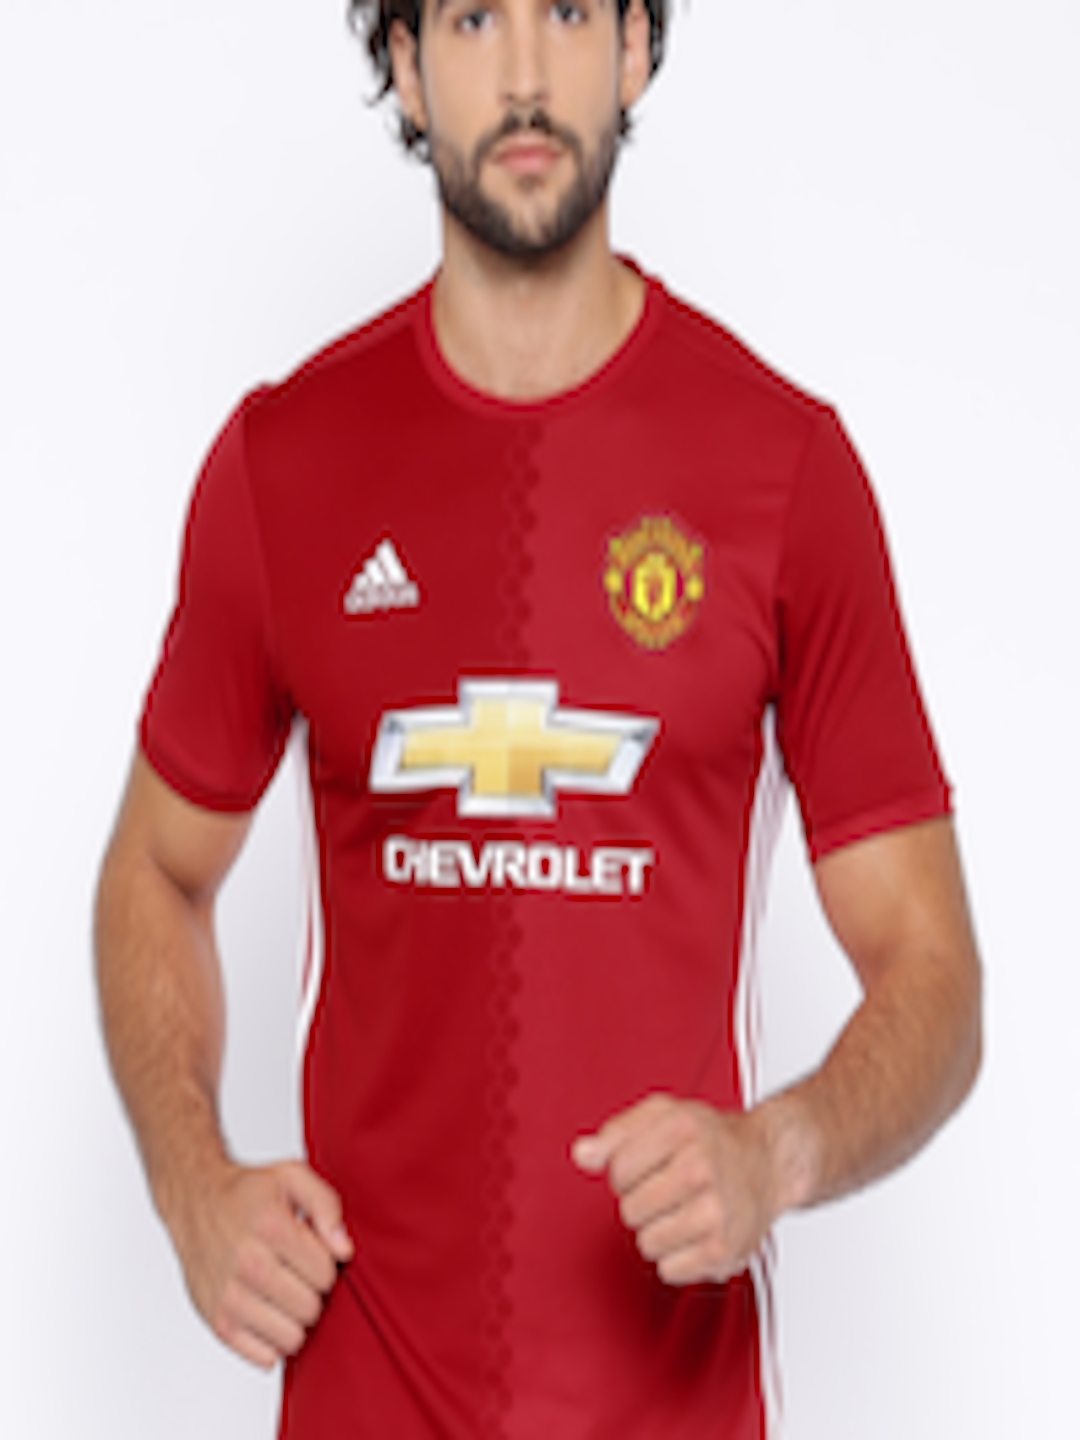 lowest price 48f86 e6a80 Manchester united jacket myntra shirts